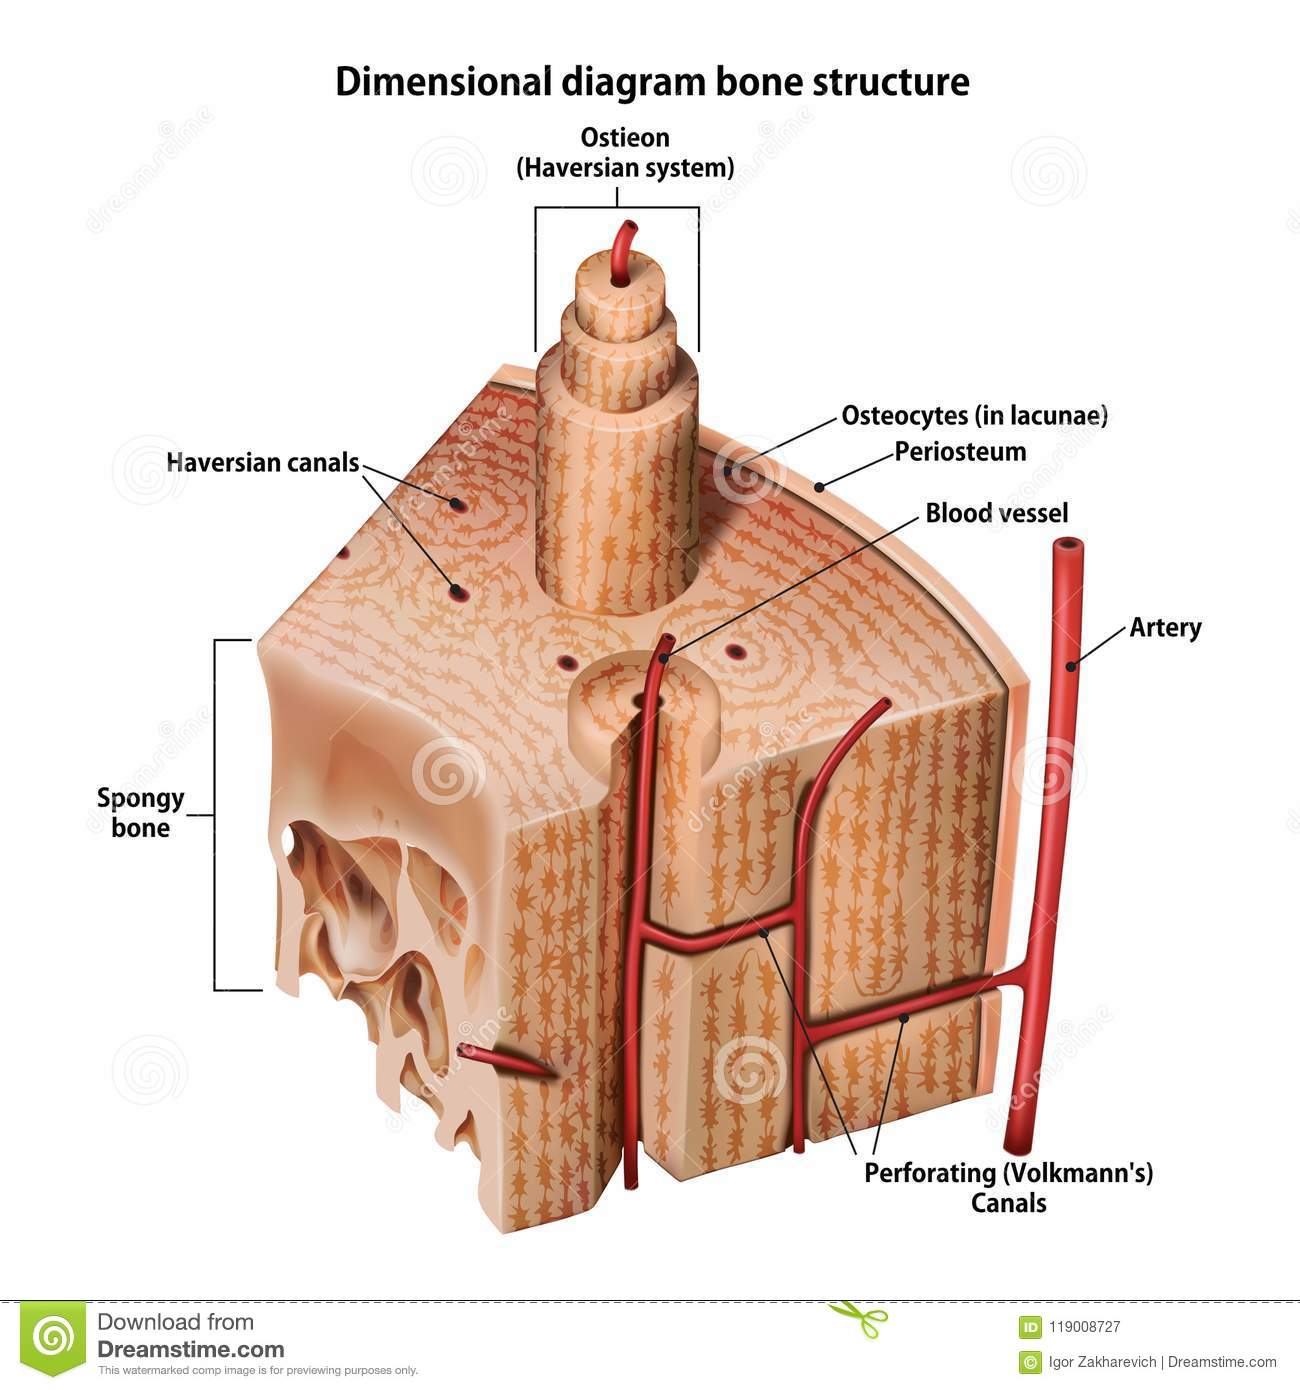 Three-dimensional diagram bone structure